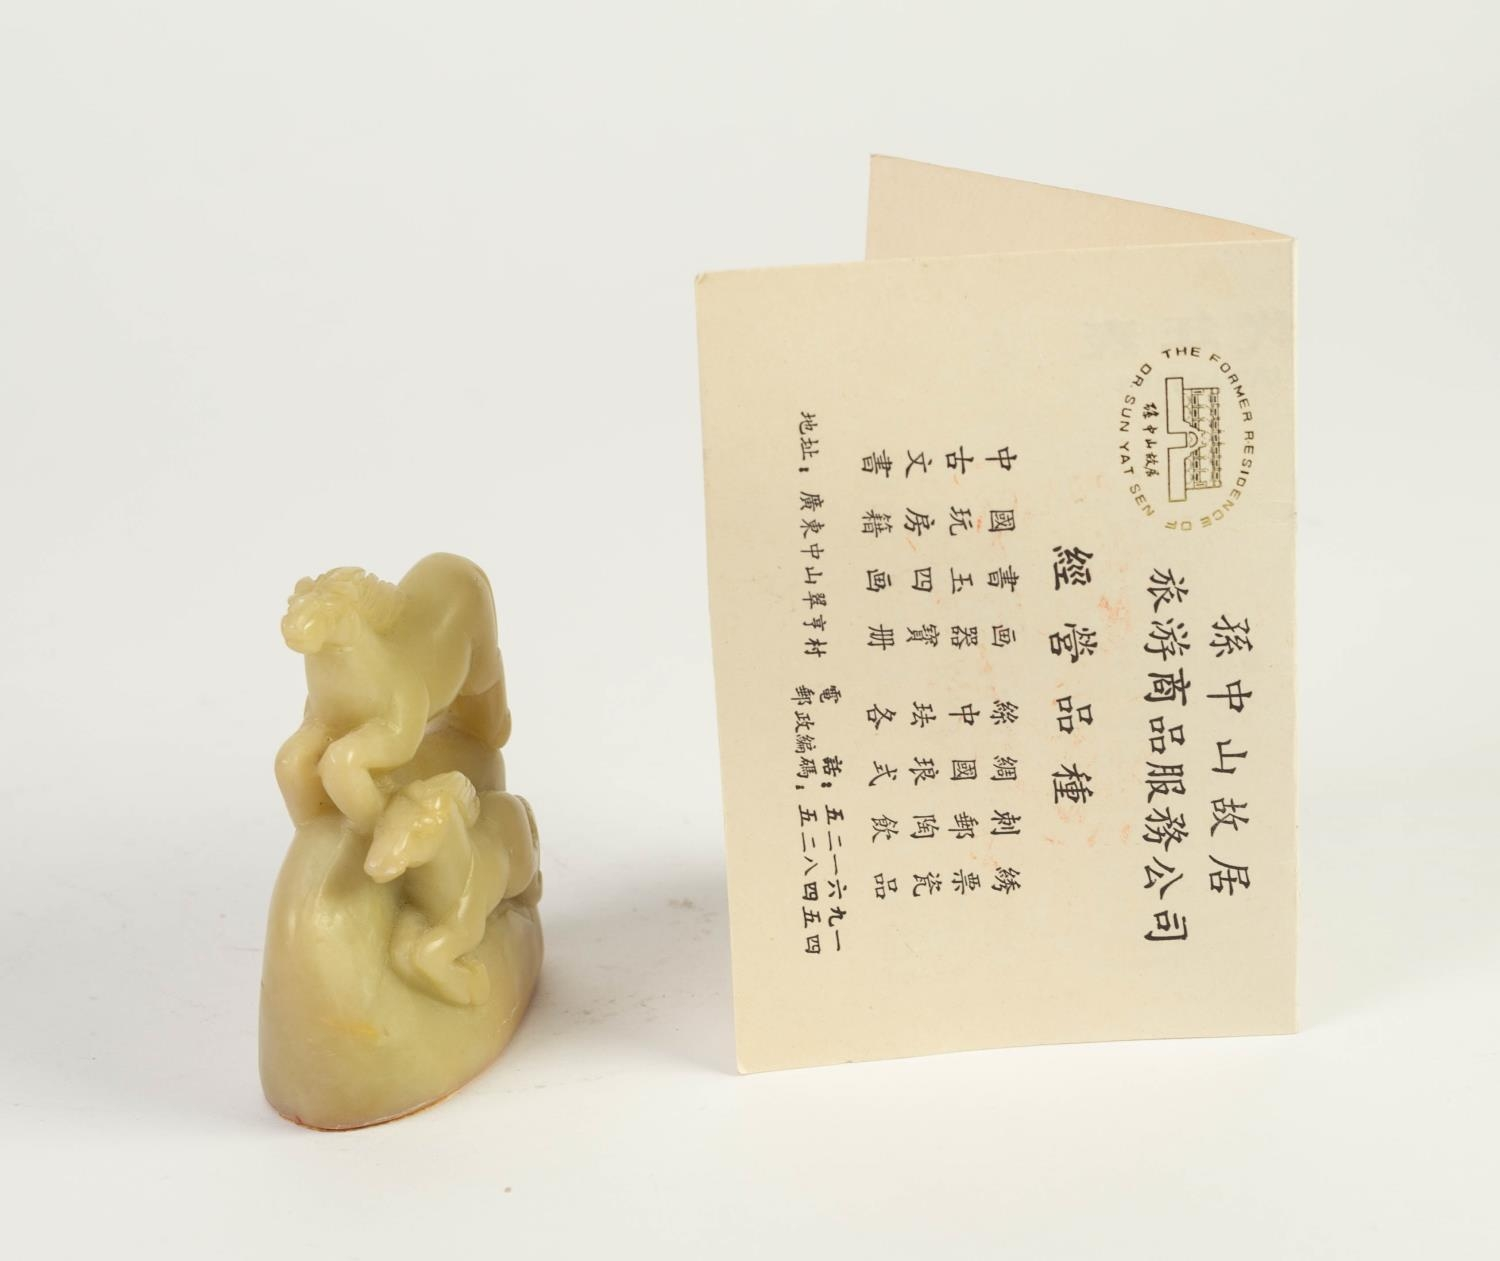 CHINESE PALE CELADON JADE CARVING OF TWO HORSES, 3in (7.5cm) high - Image 5 of 5